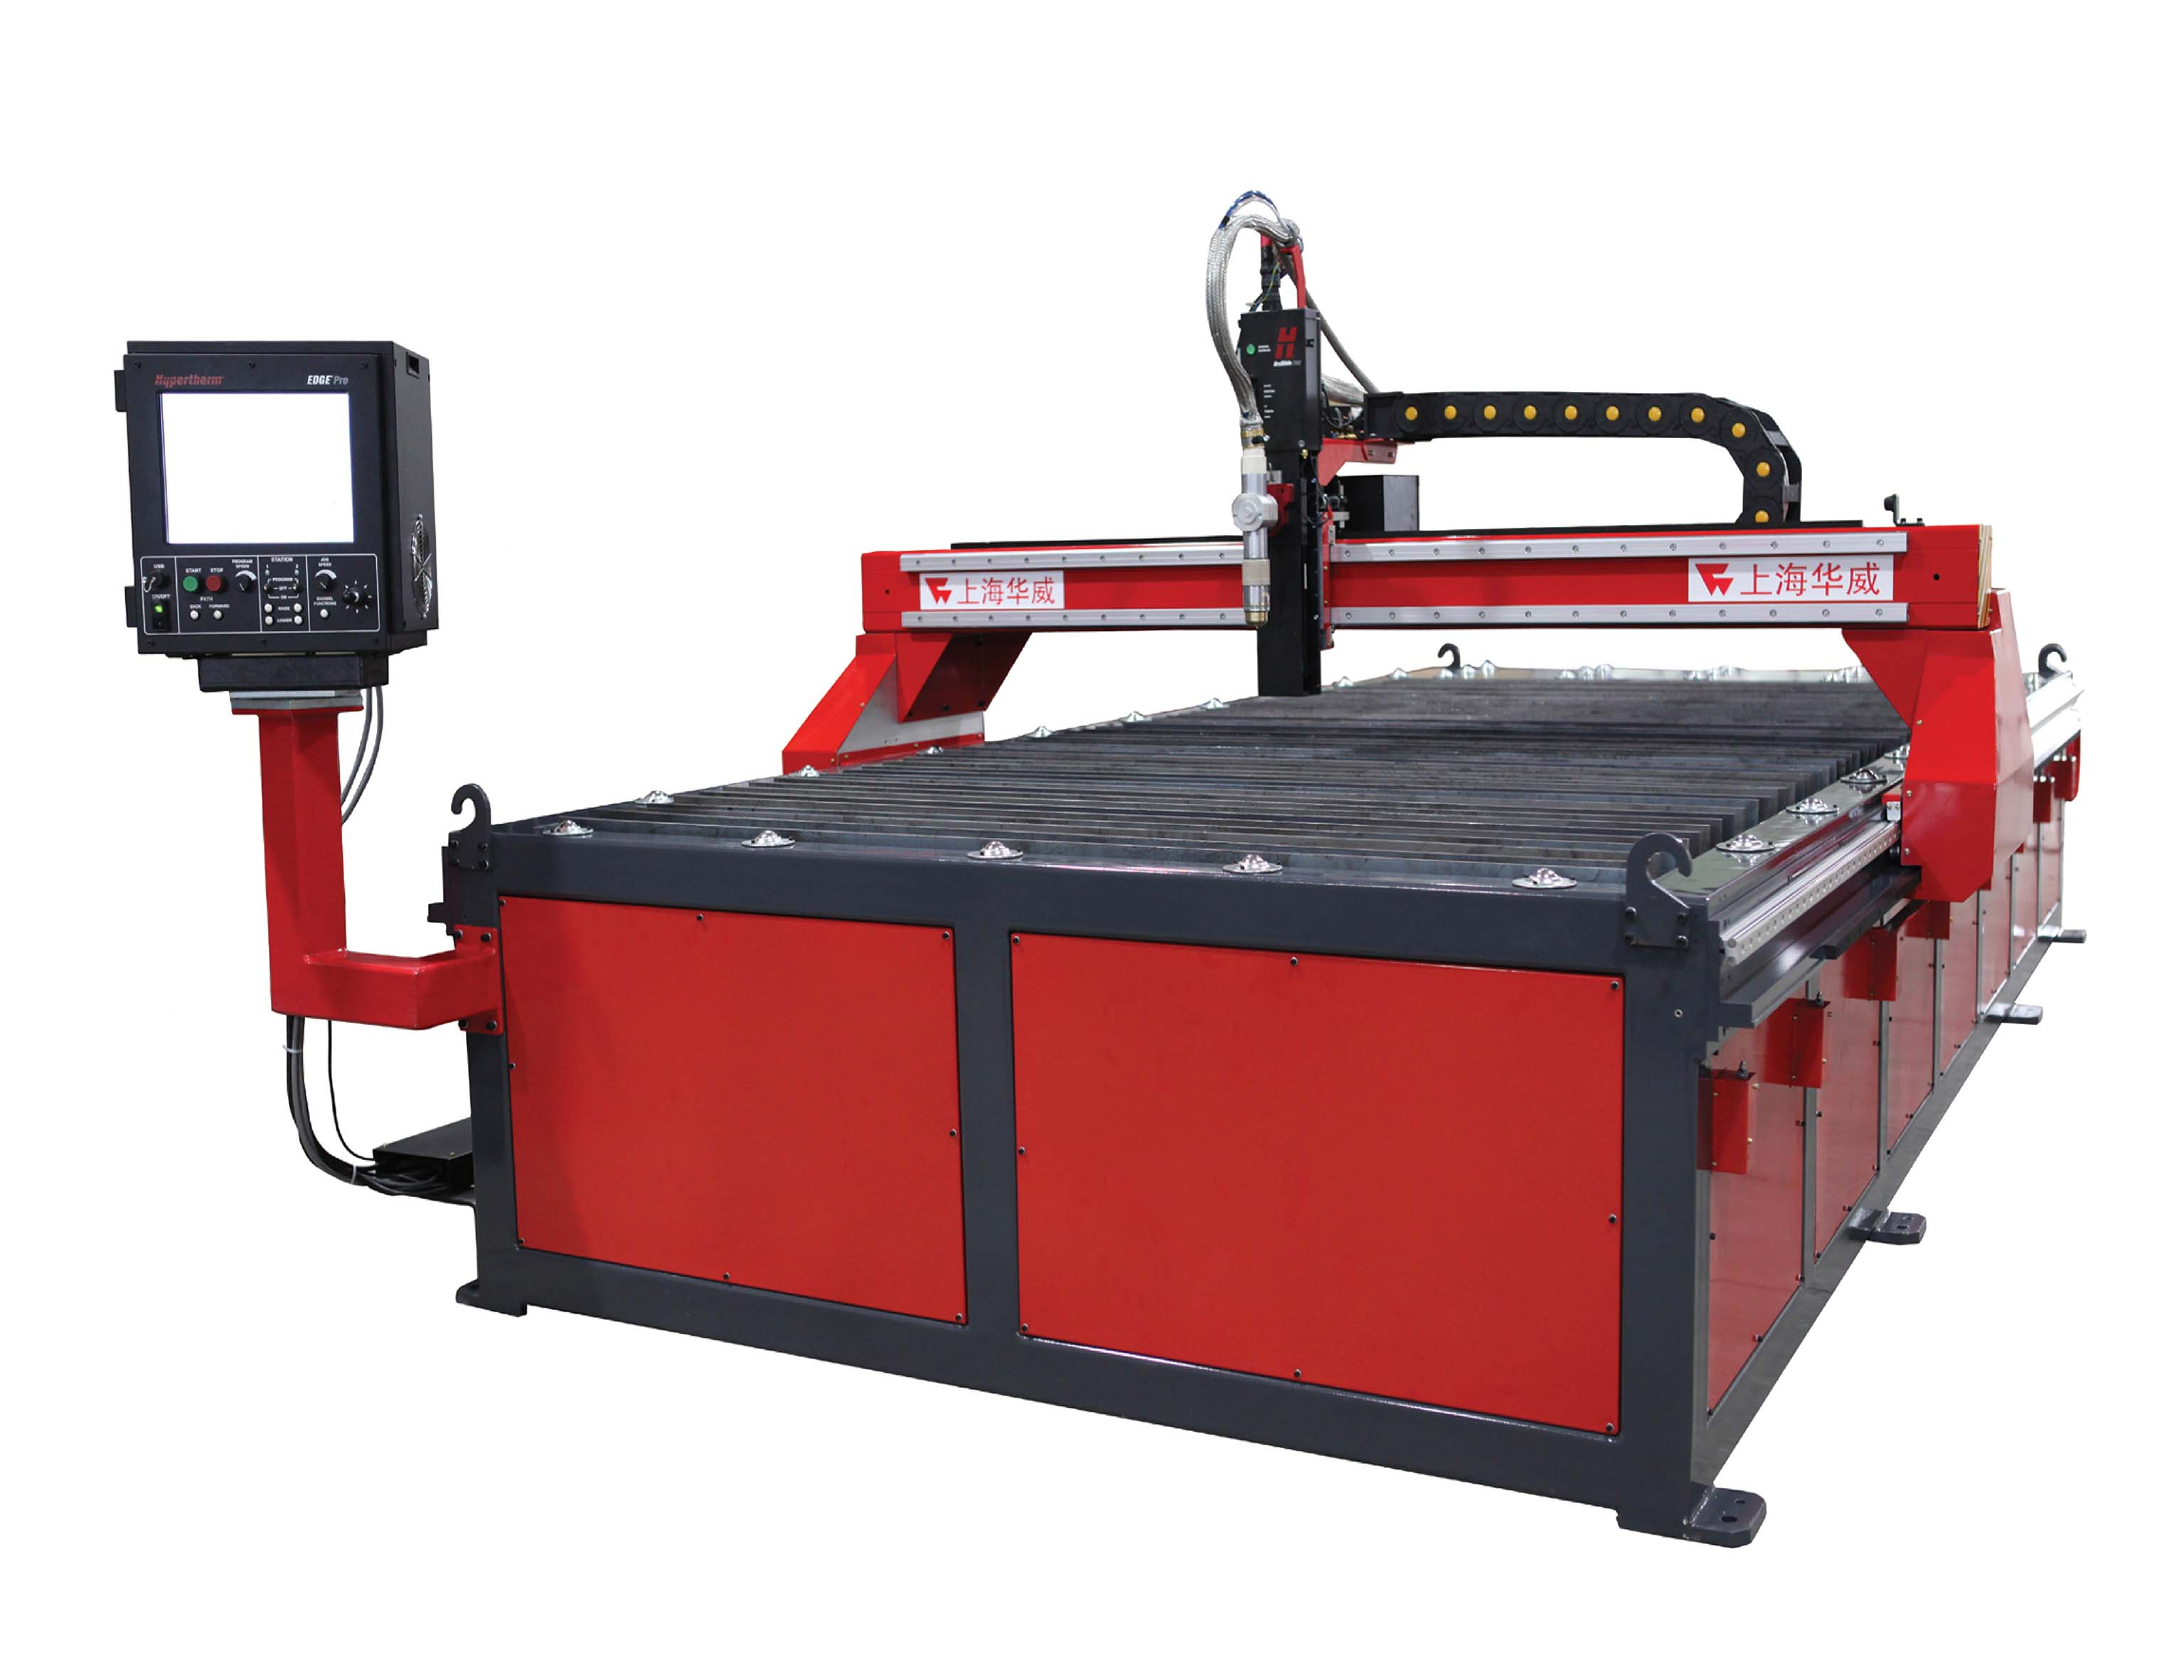 plasma weldmyworld tables source img cutting a image table cutter connect how cnc hypertherm with to